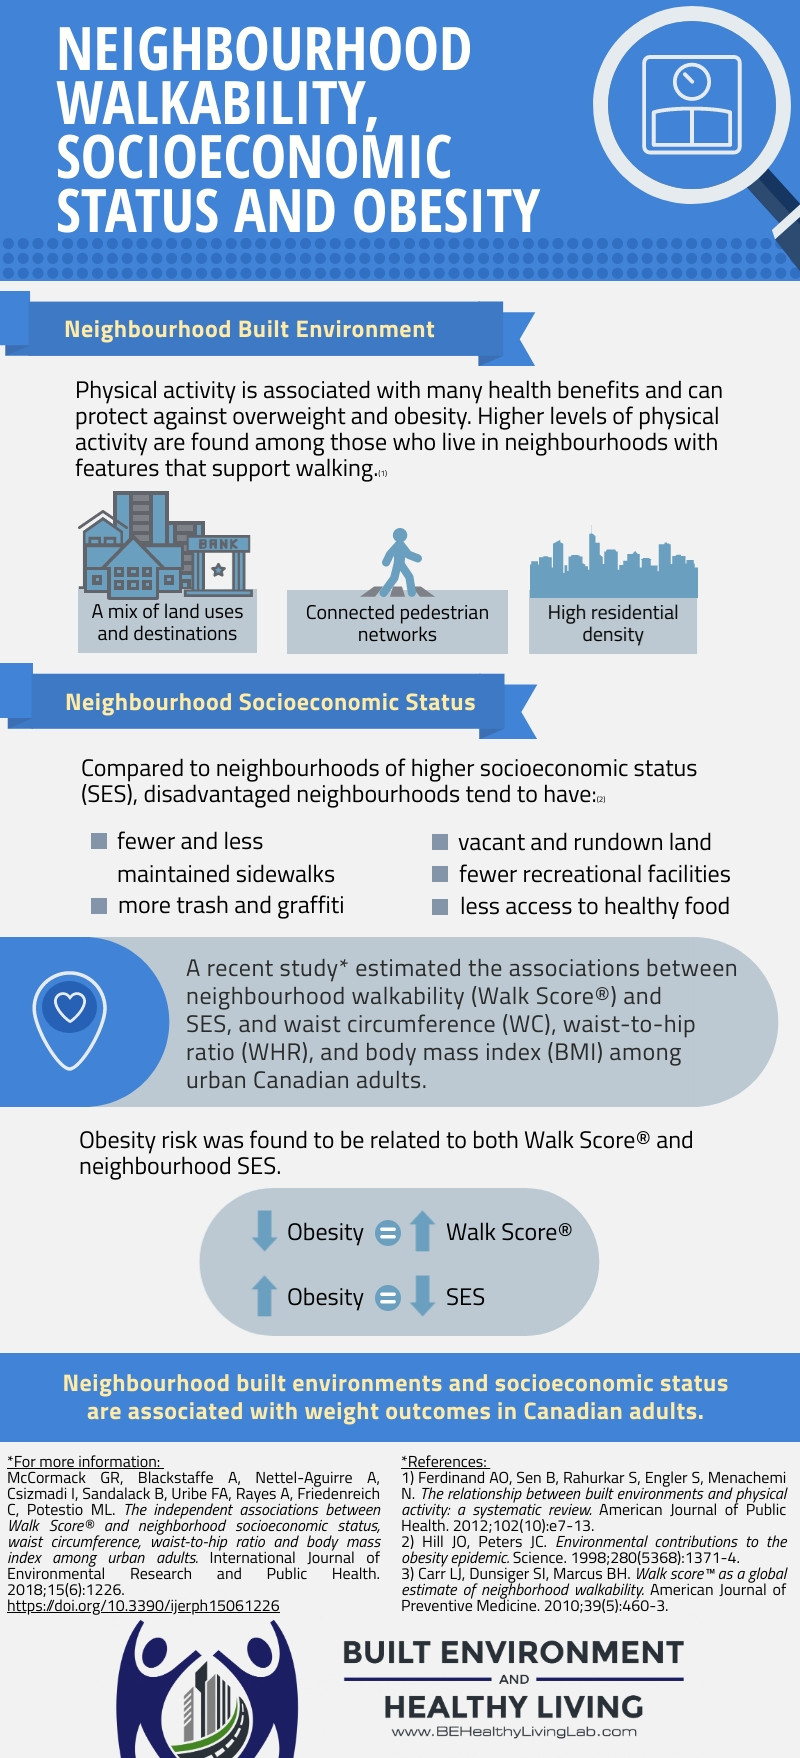 Neighbourhood Walkability, Socioeconomic Status and Obesity